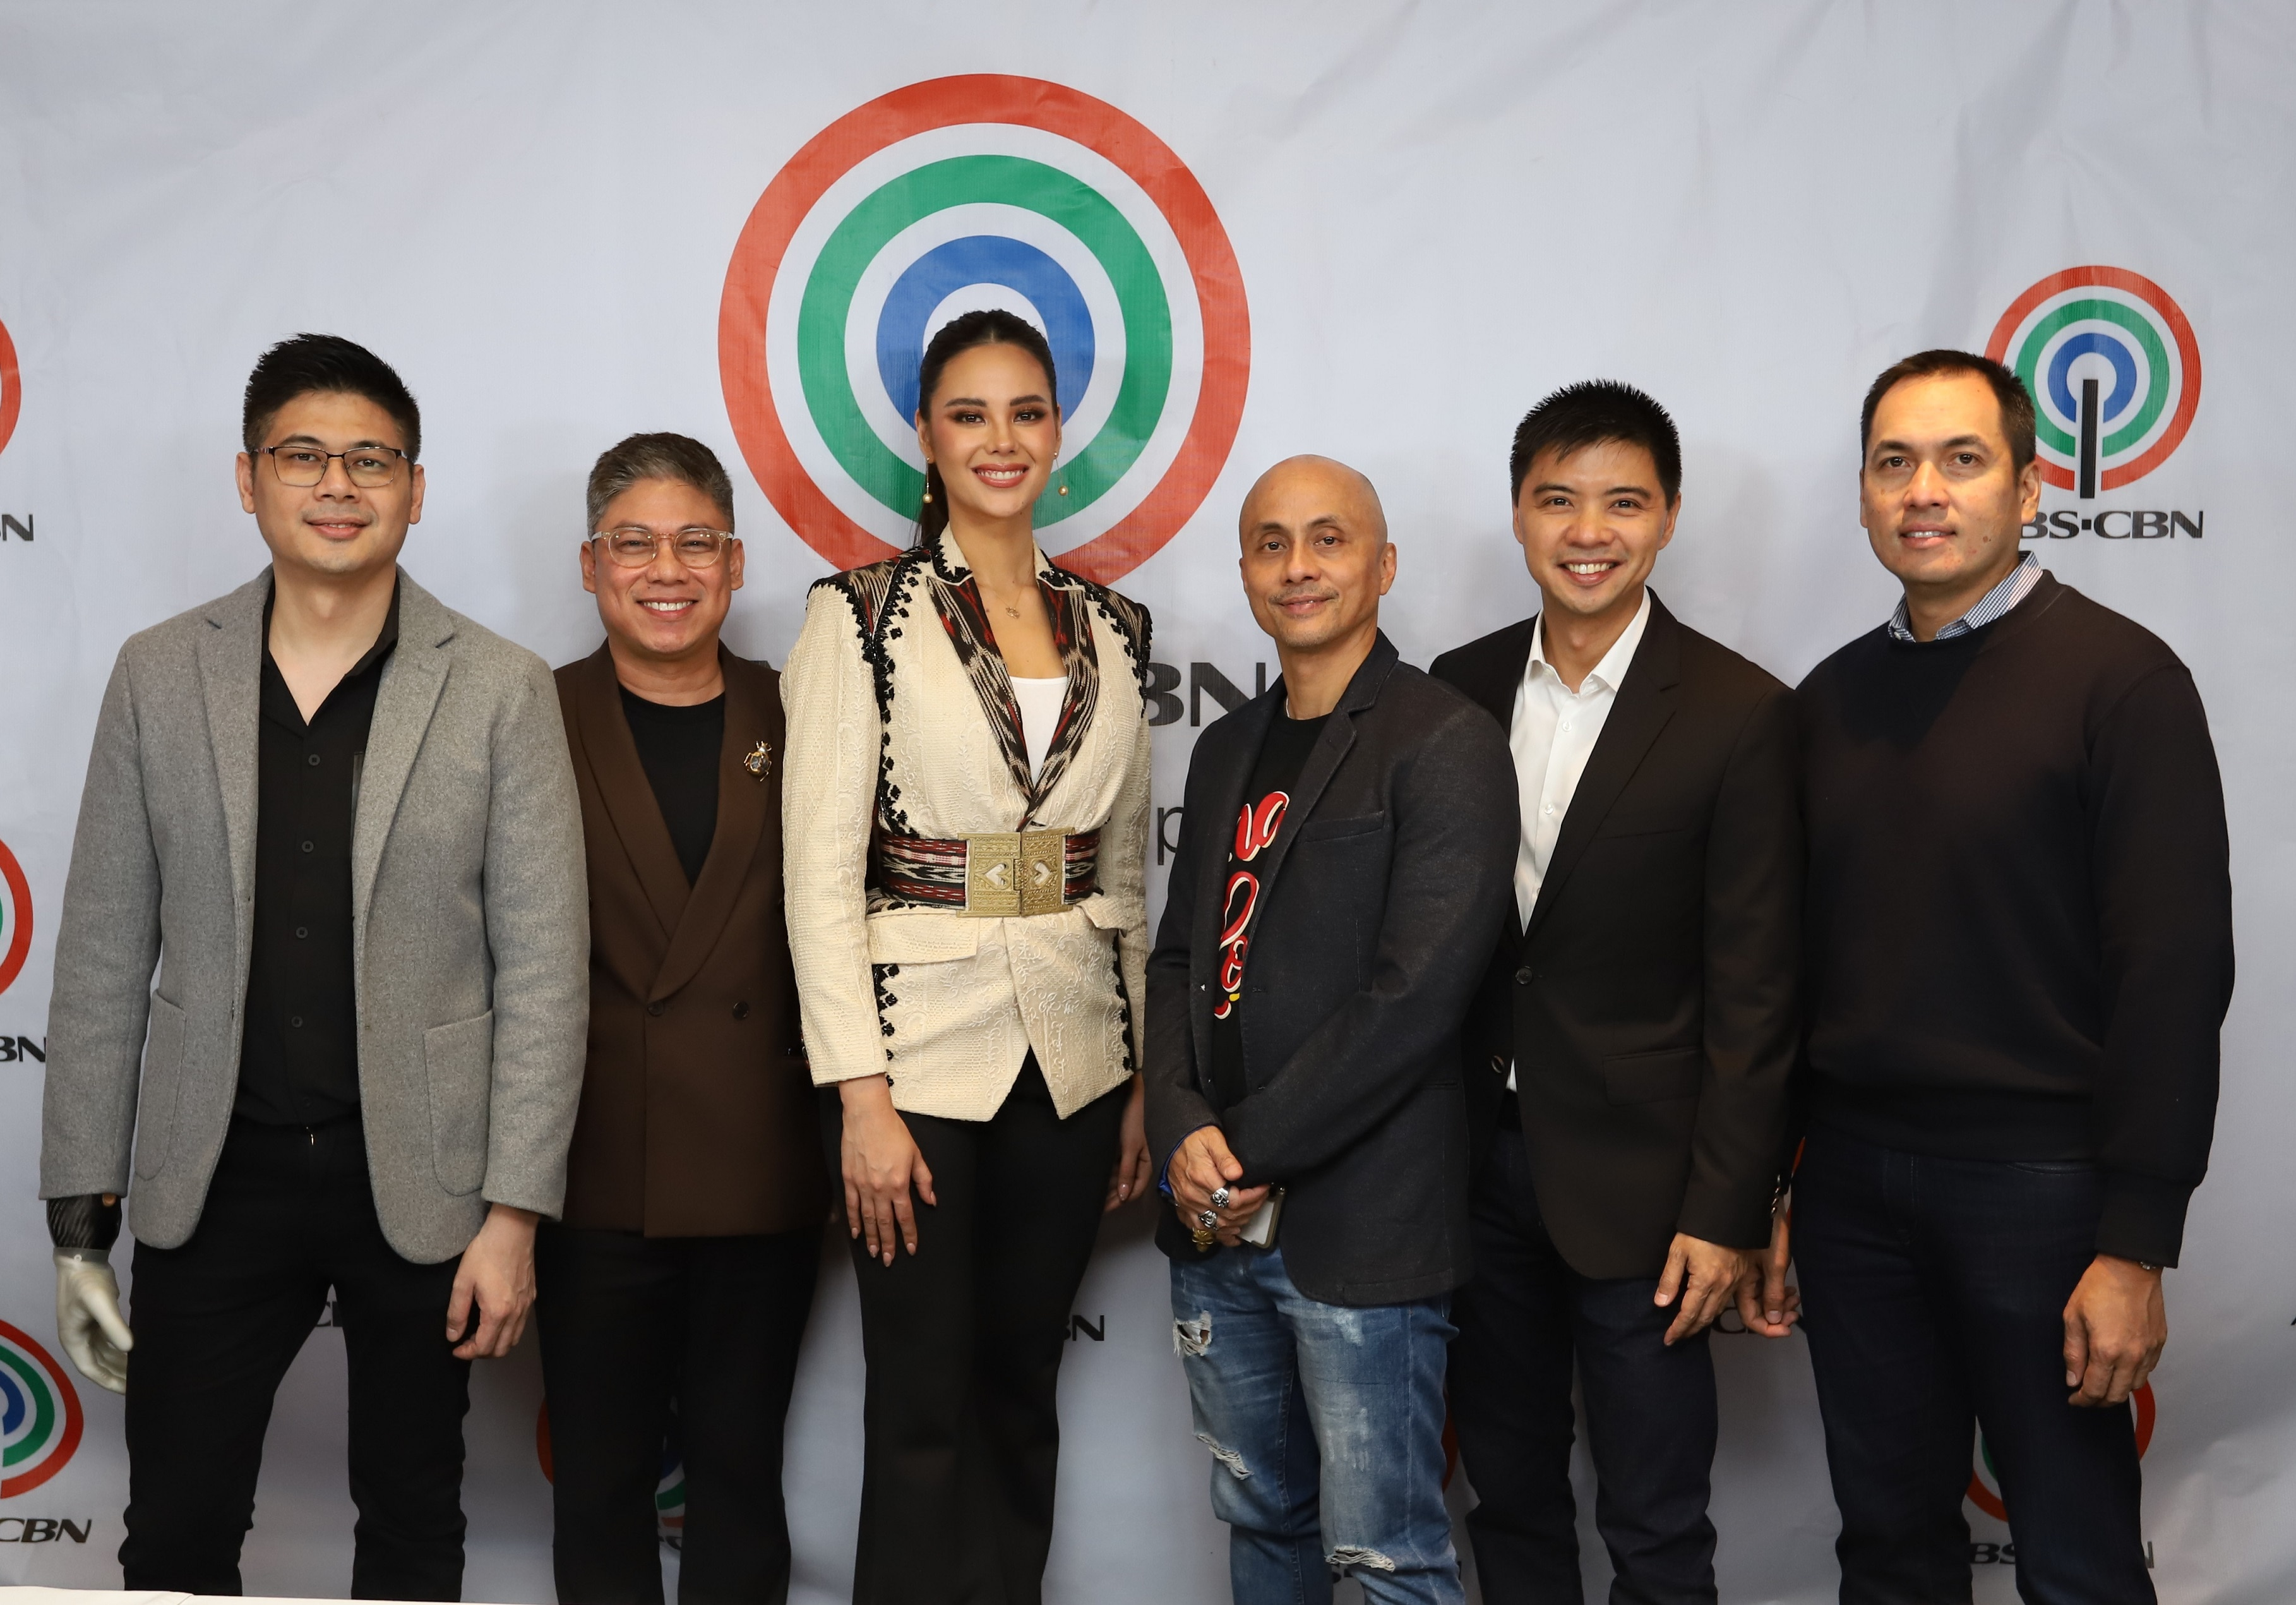 Catriona with Cornerstone Entertainment and ABS CBN execs